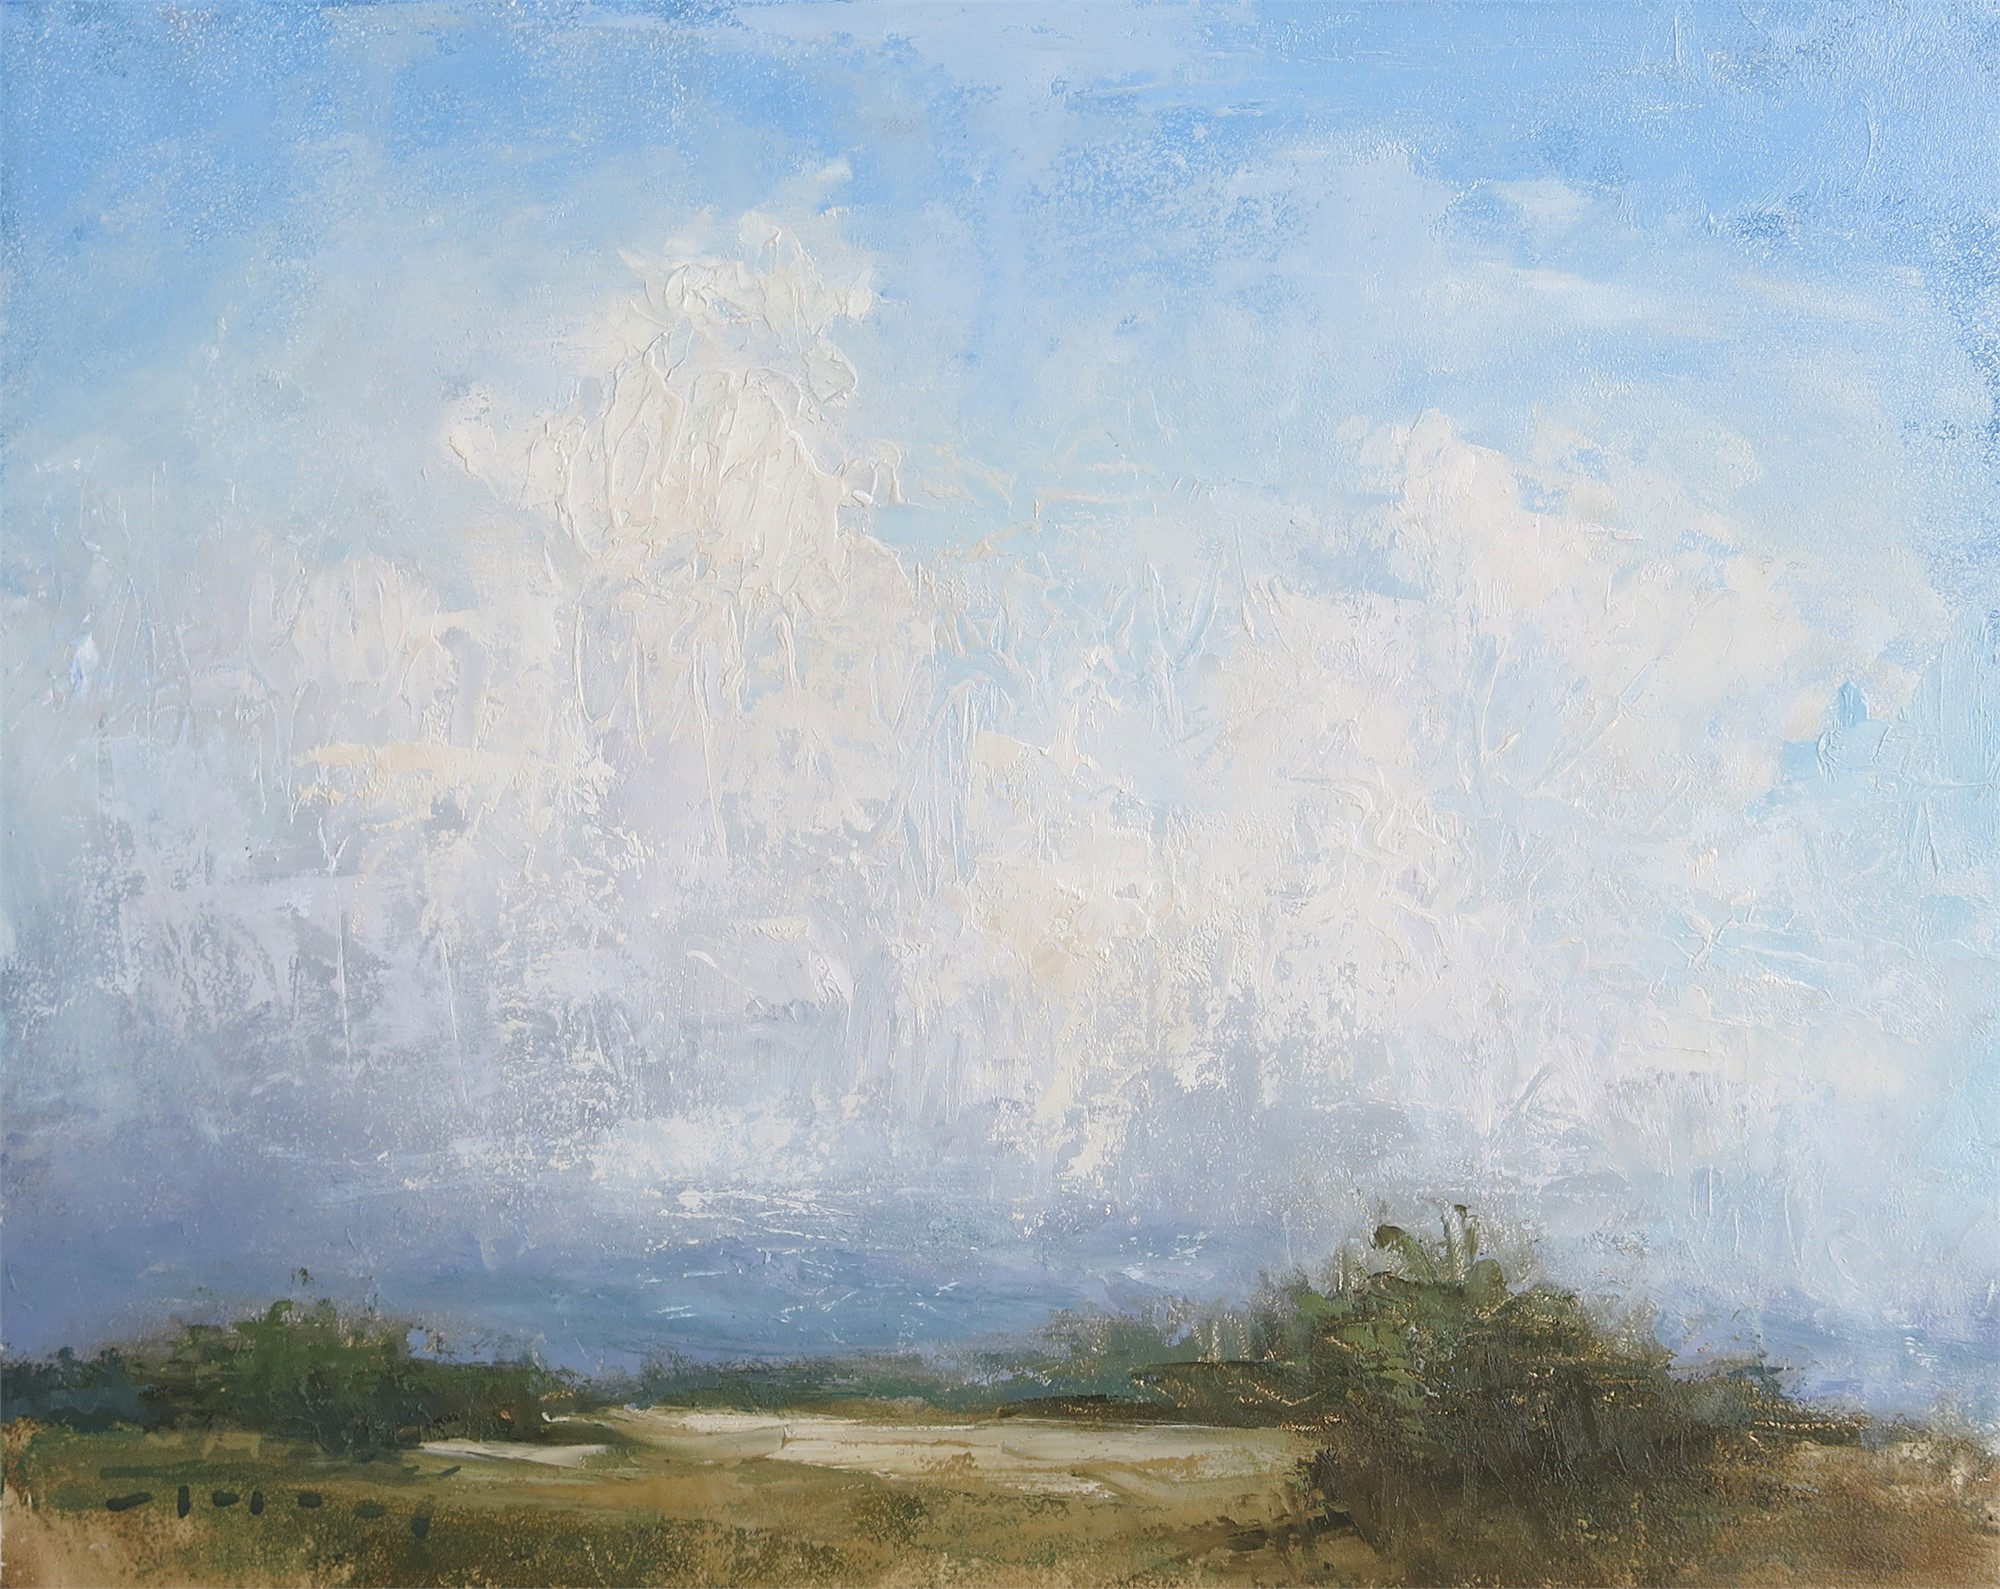 Cloud Study by Jane Hunt